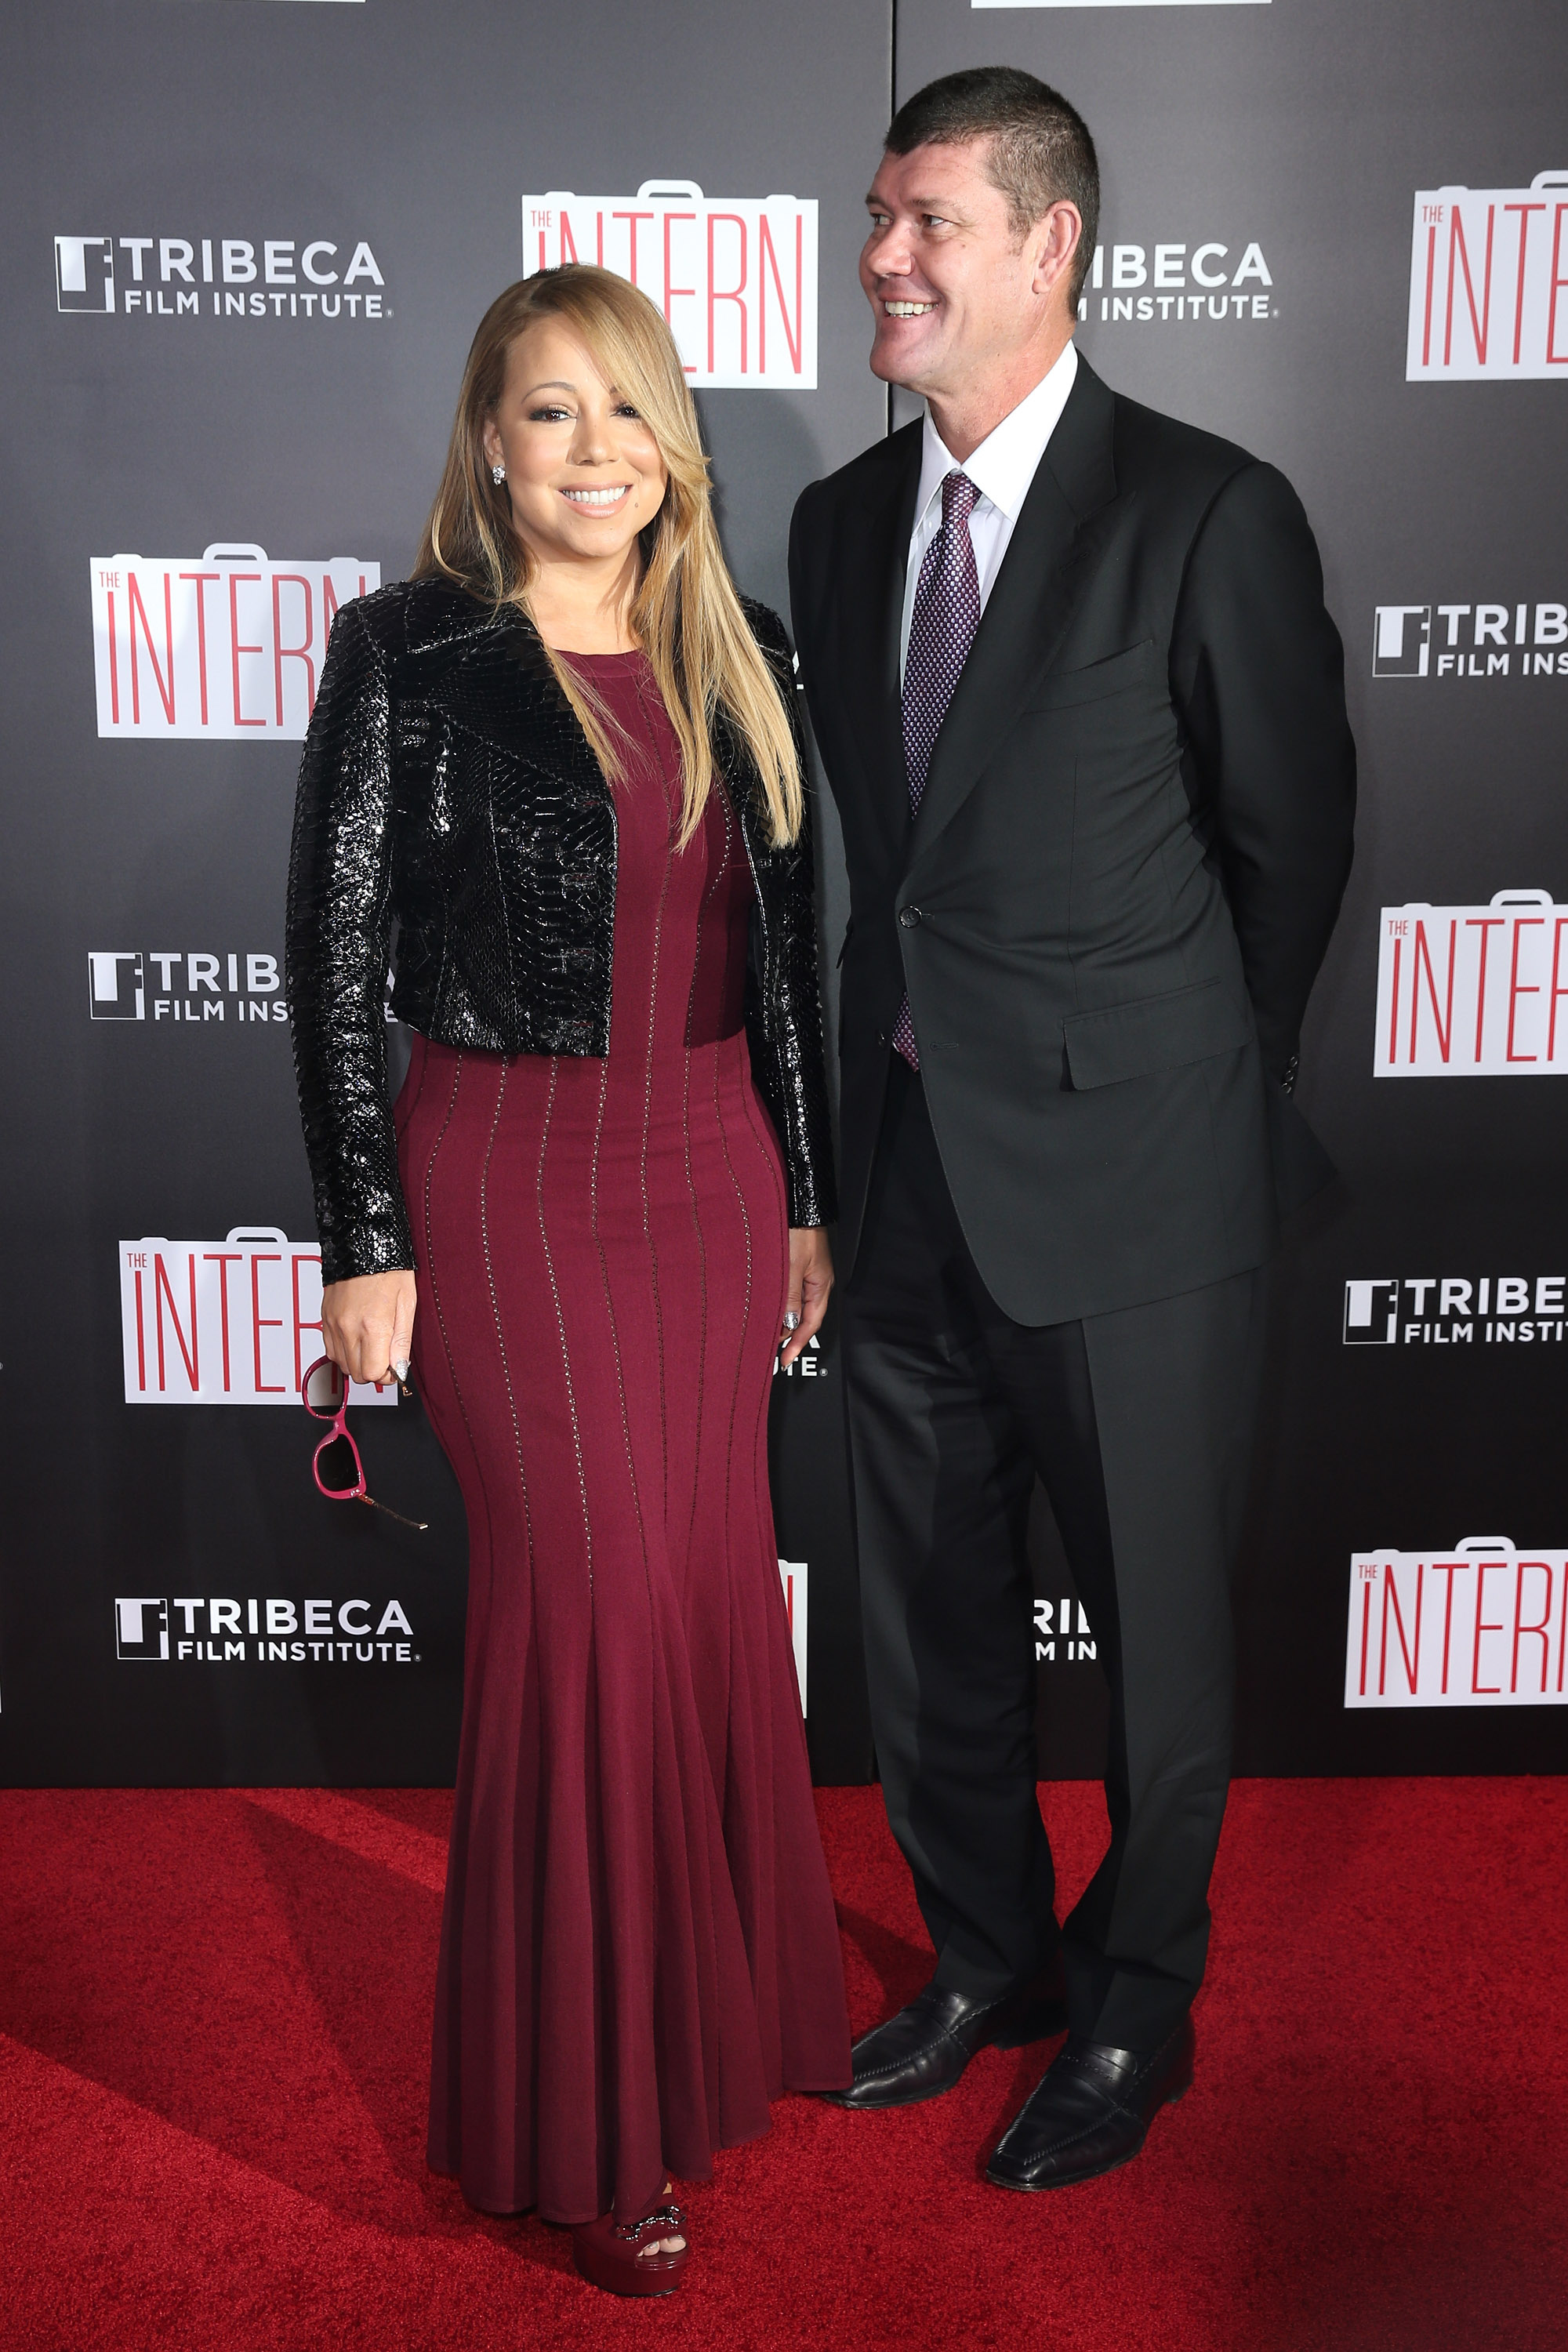 Mariah Carey, James Packer to wed as soon her divorce is finalized